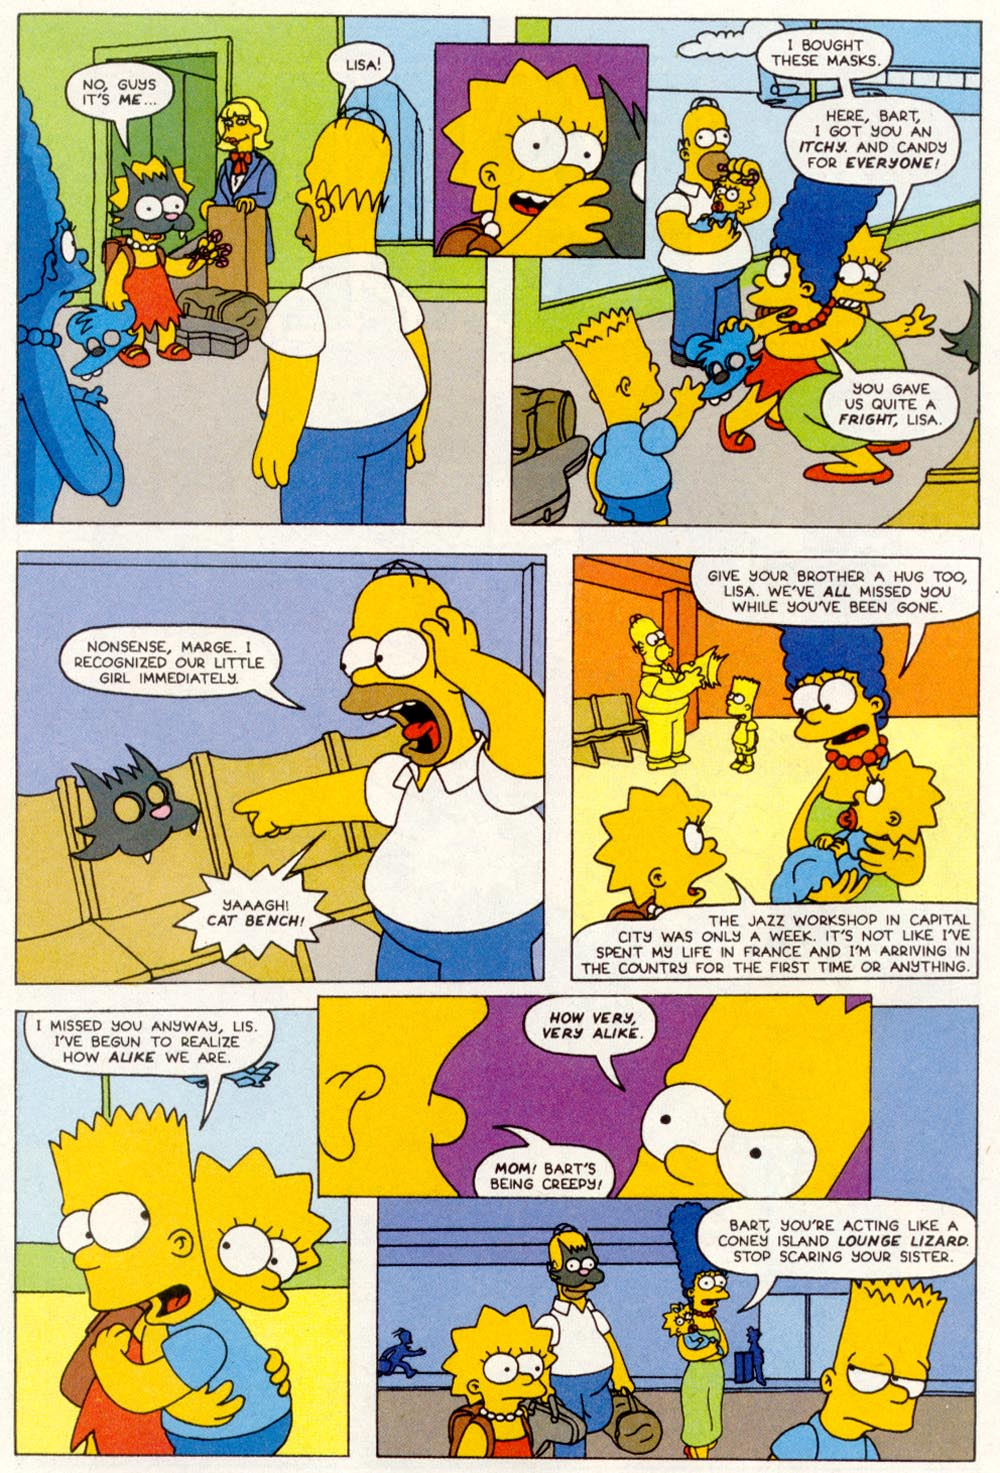 Read online Treehouse of Horror comic -  Issue #1 - 34